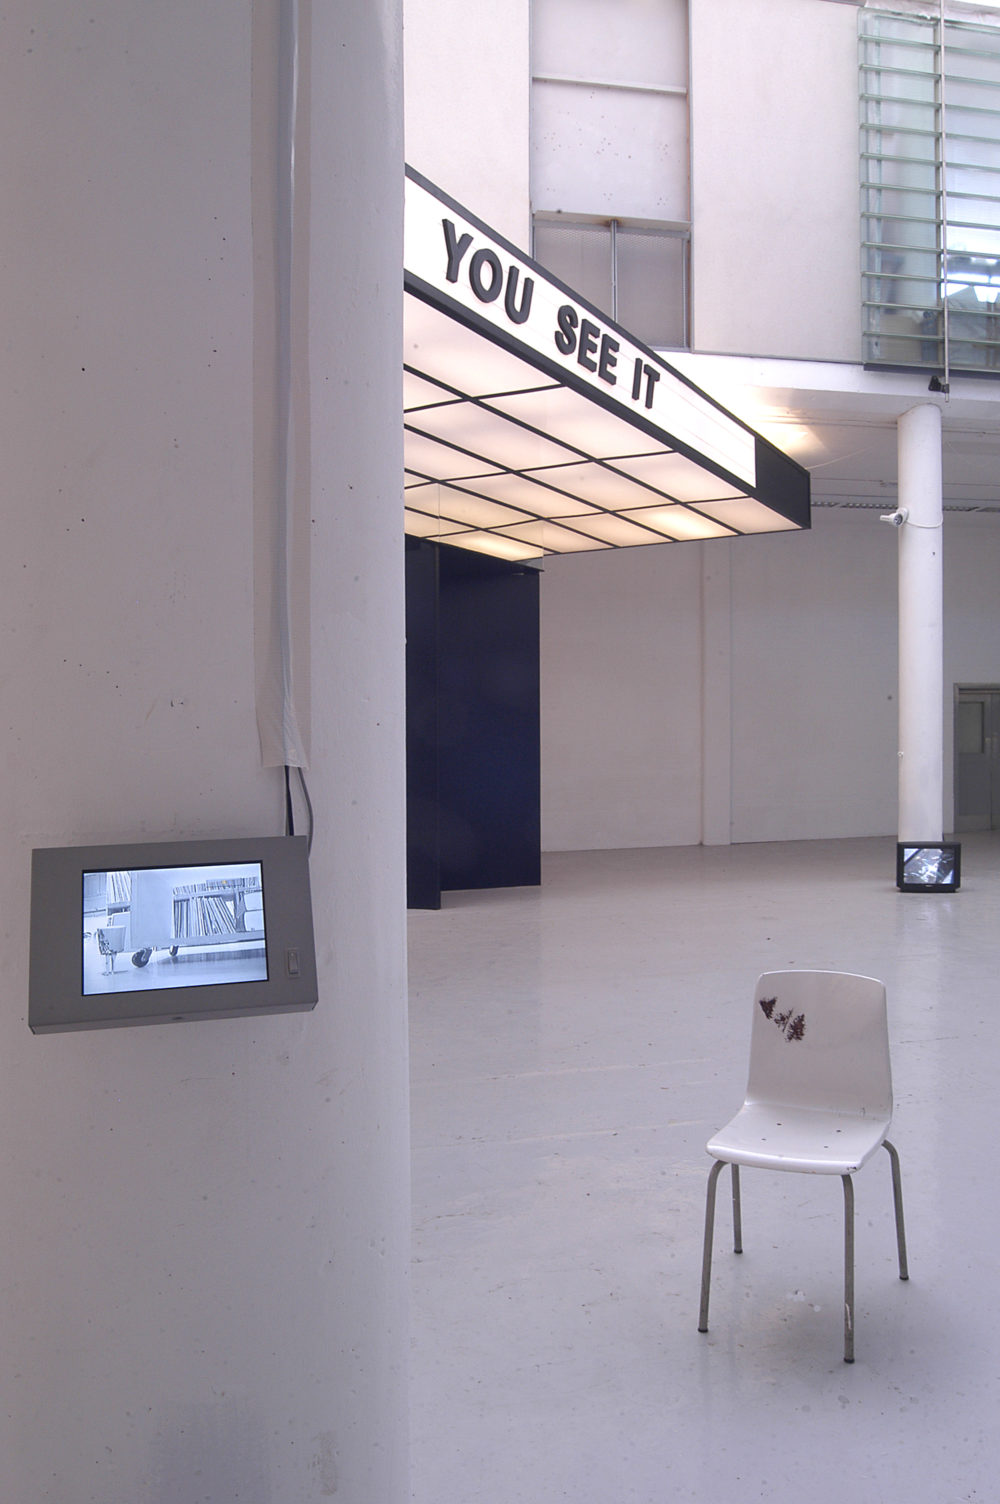 Installation view of Spin Cycle (2004). A small screen is attached to a pillar. Behind it is a plastic moulded chair.